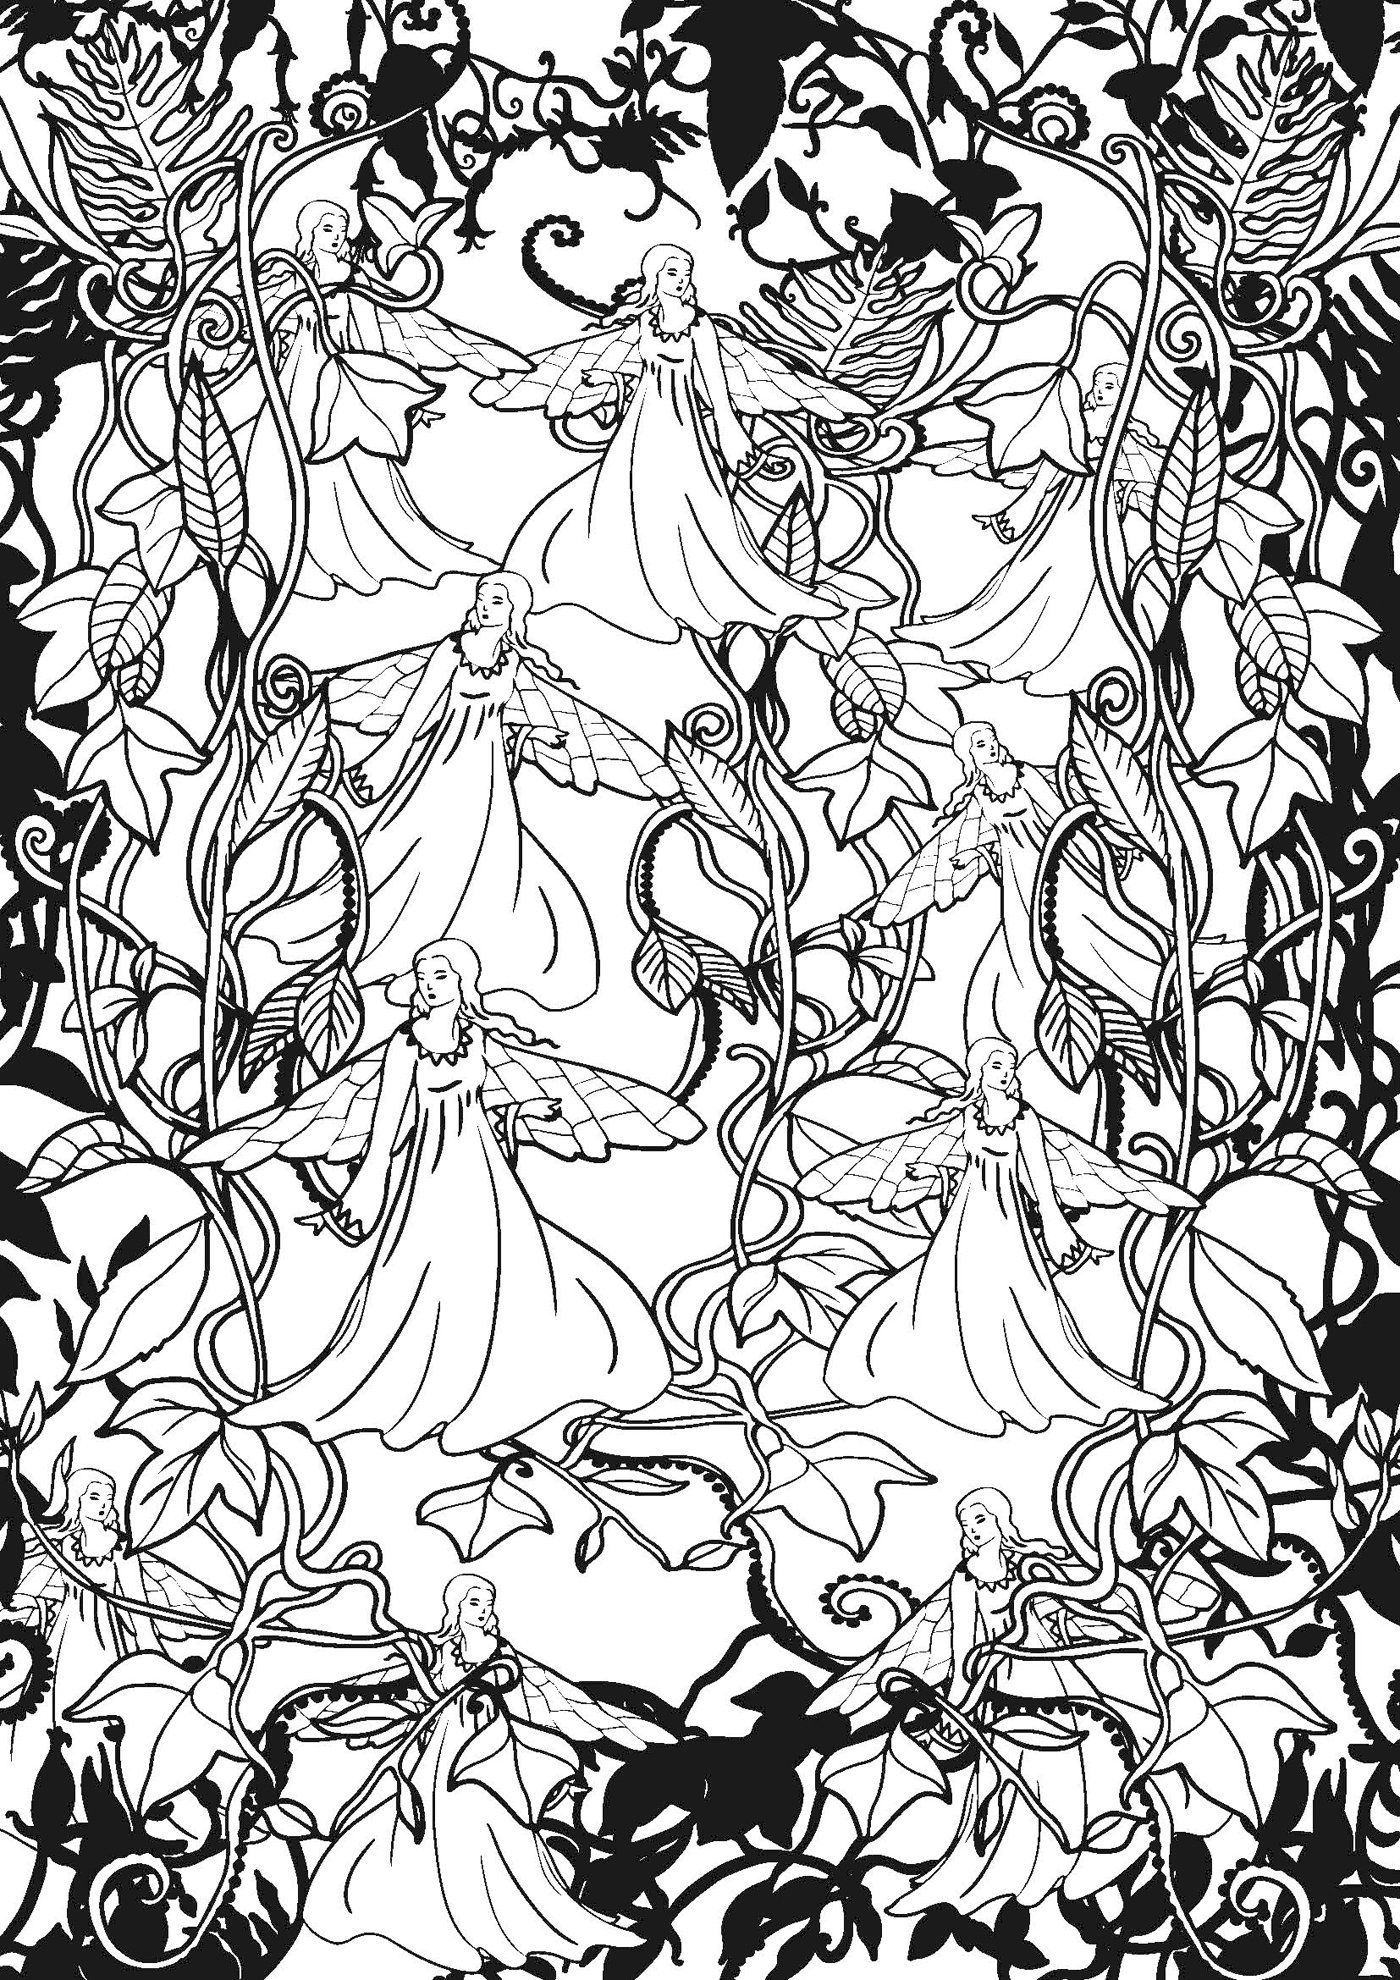 Art therapie forets feeriques 100 coloriages anti stress french edition marthe mulkey - Art therapie coloriage ...